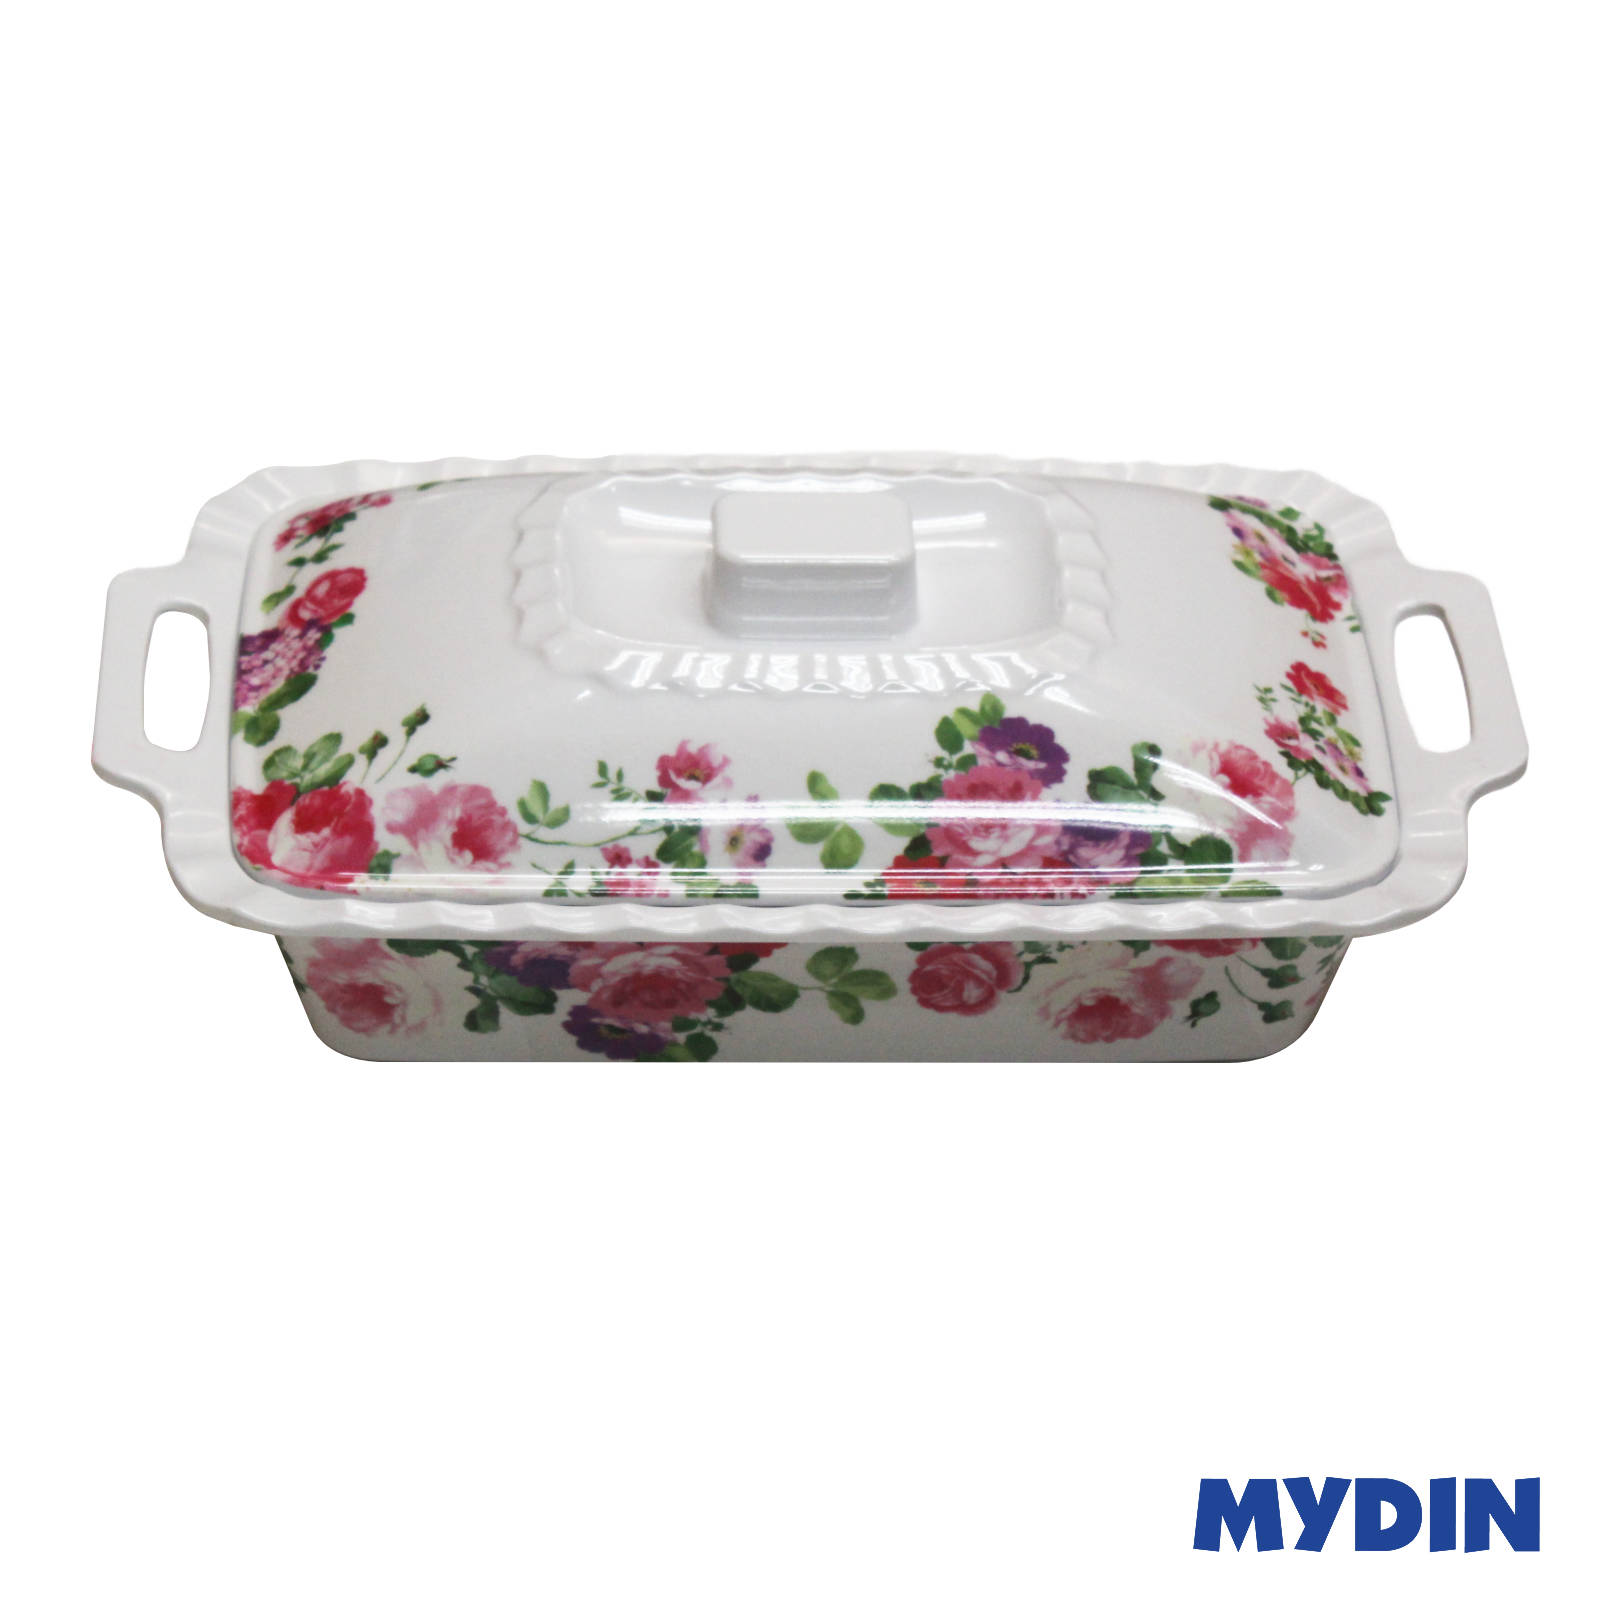 My Home Melamine Tureen Rectangle (13'') FWR CW-TU-13